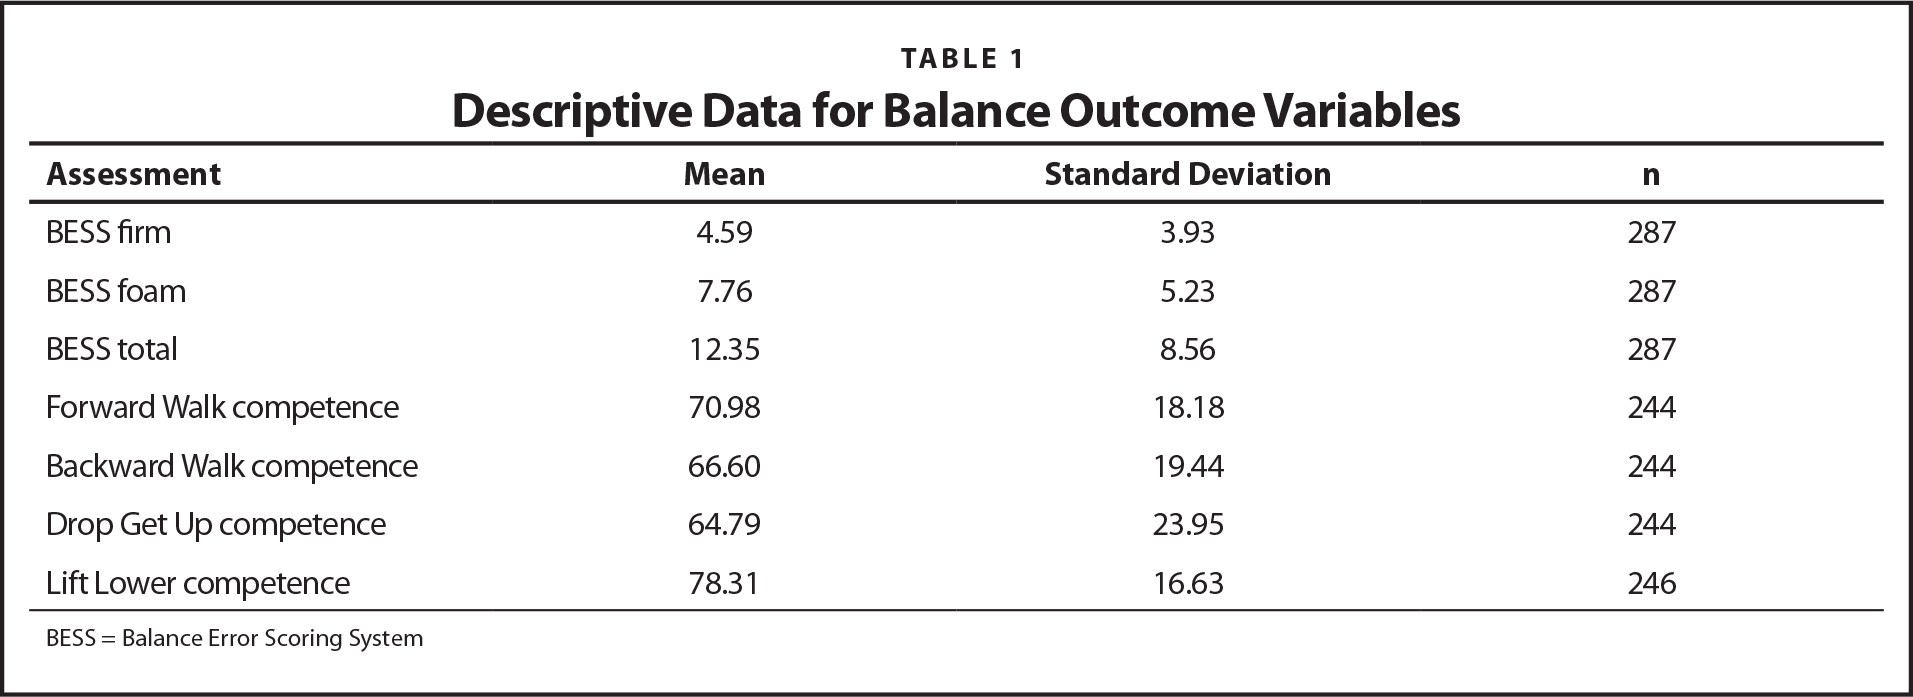 Descriptive Data for Balance Outcome Variables